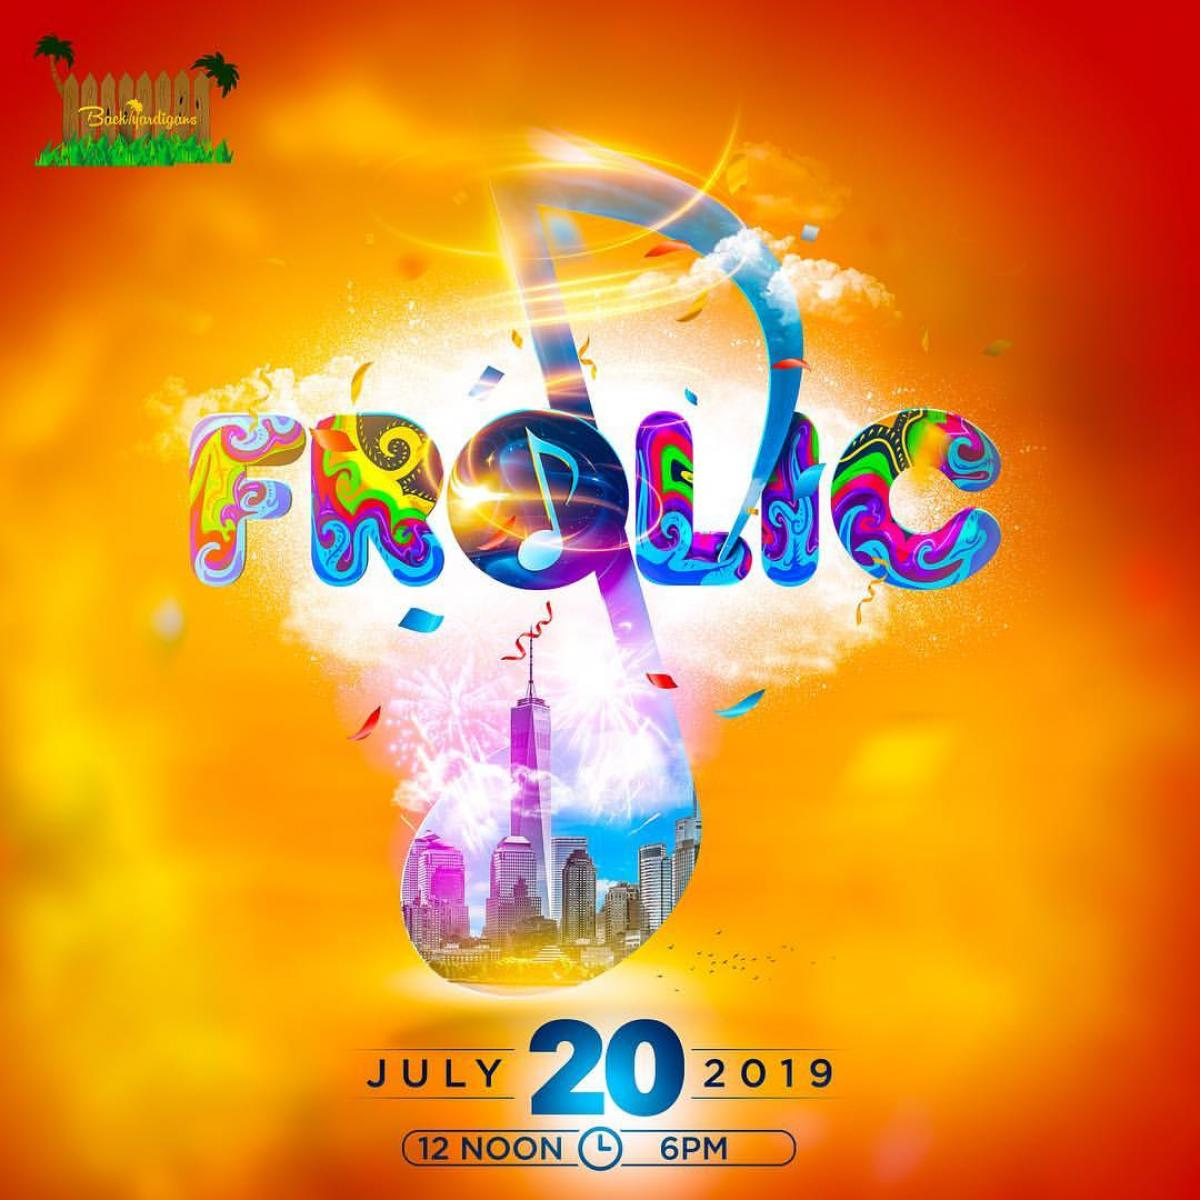 Frolic flyer or graphic.